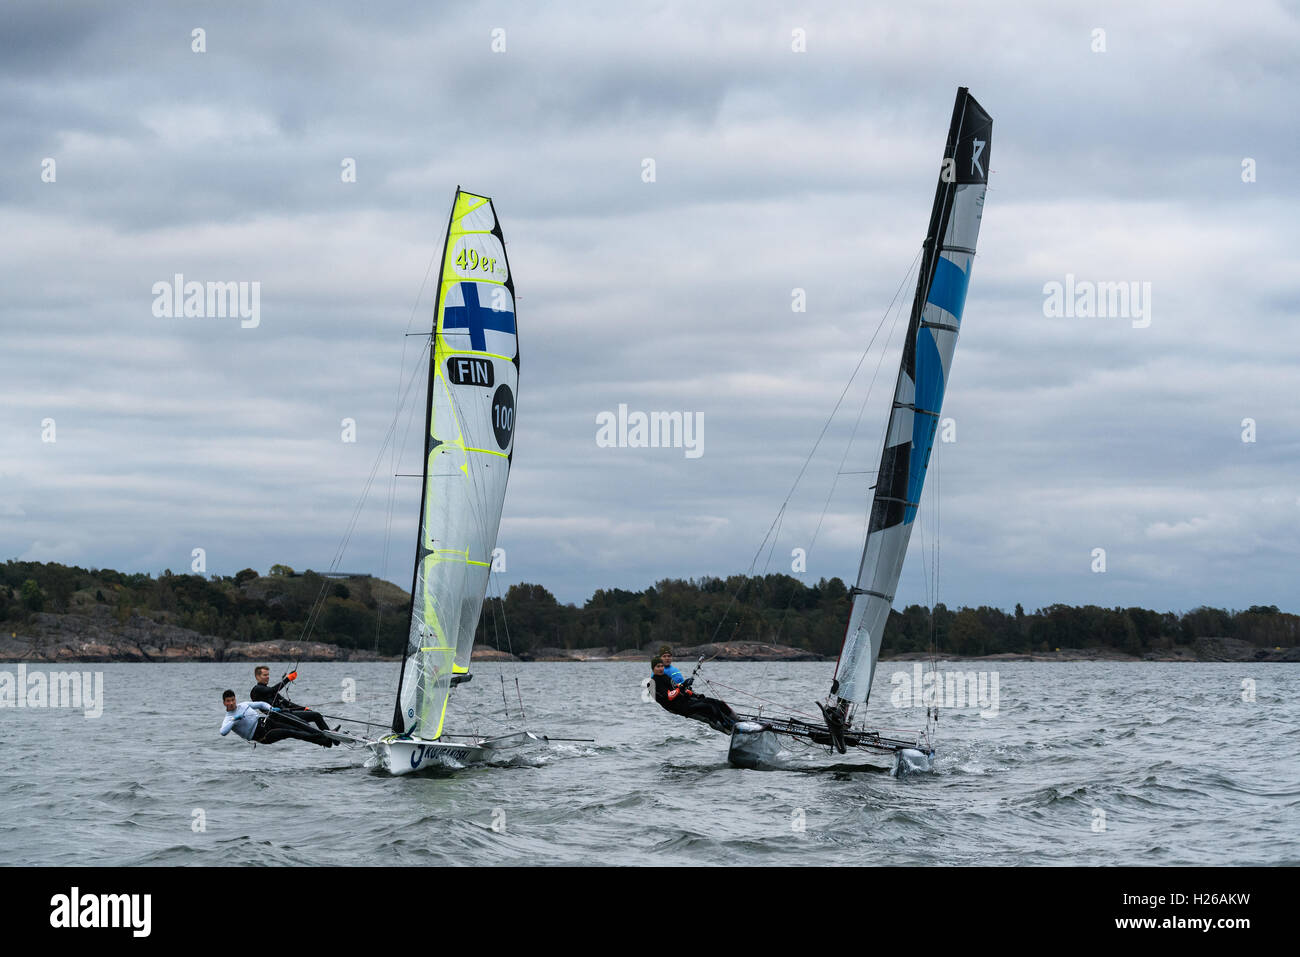 F18 and 49er sailing competition in Helsinki, Finland, Europe, EU - Stock Image